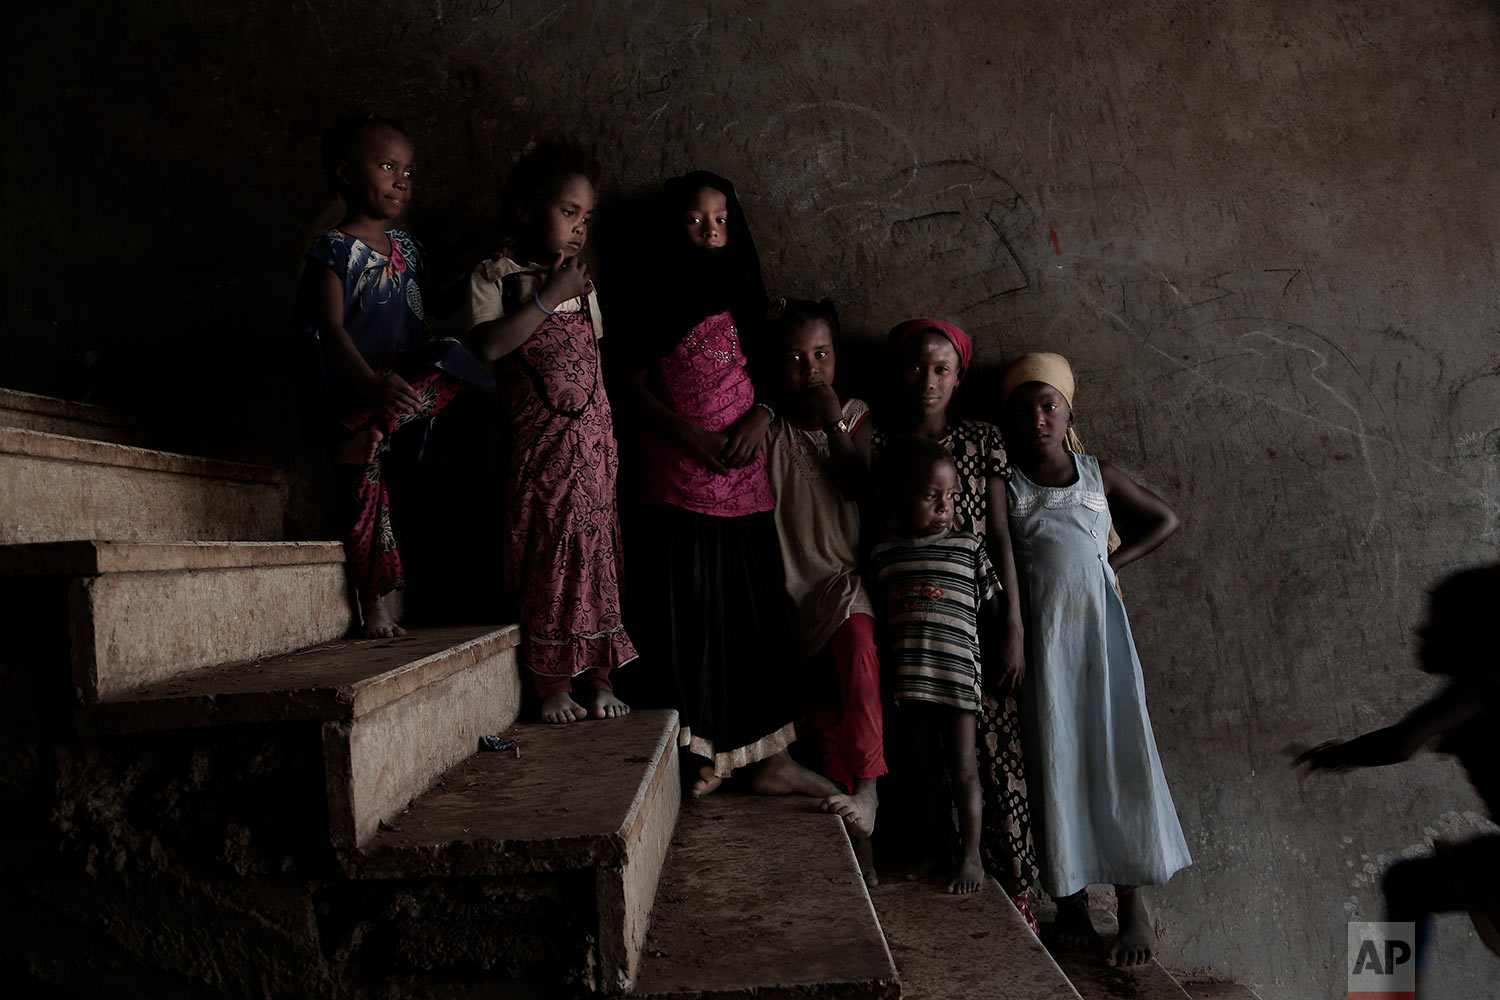 Displaced girls pose for a photograph inside a school turned into a camp for displaced persons in Khanfar, Abyan, Yemen. (AP Photo/Nariman El-Mofty)